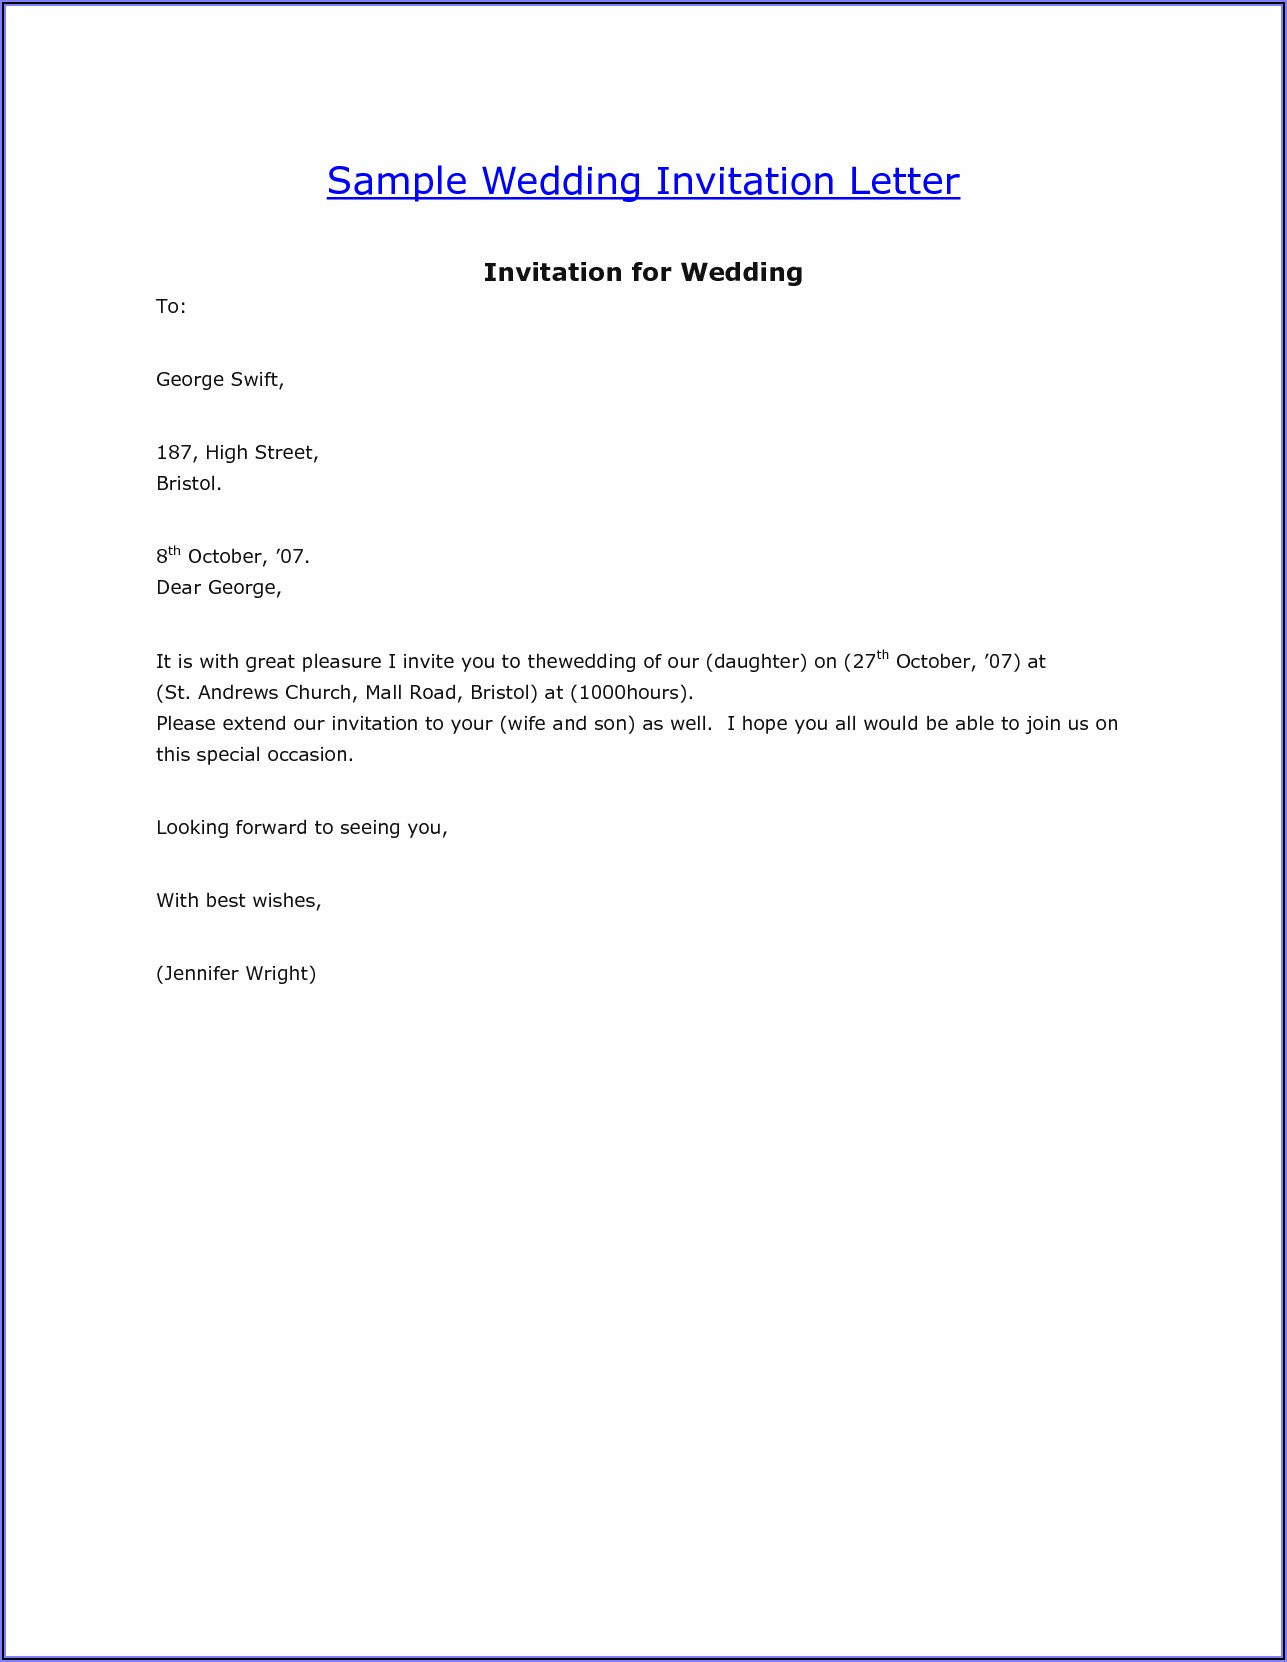 Marriage Invitation Email To Colleagues